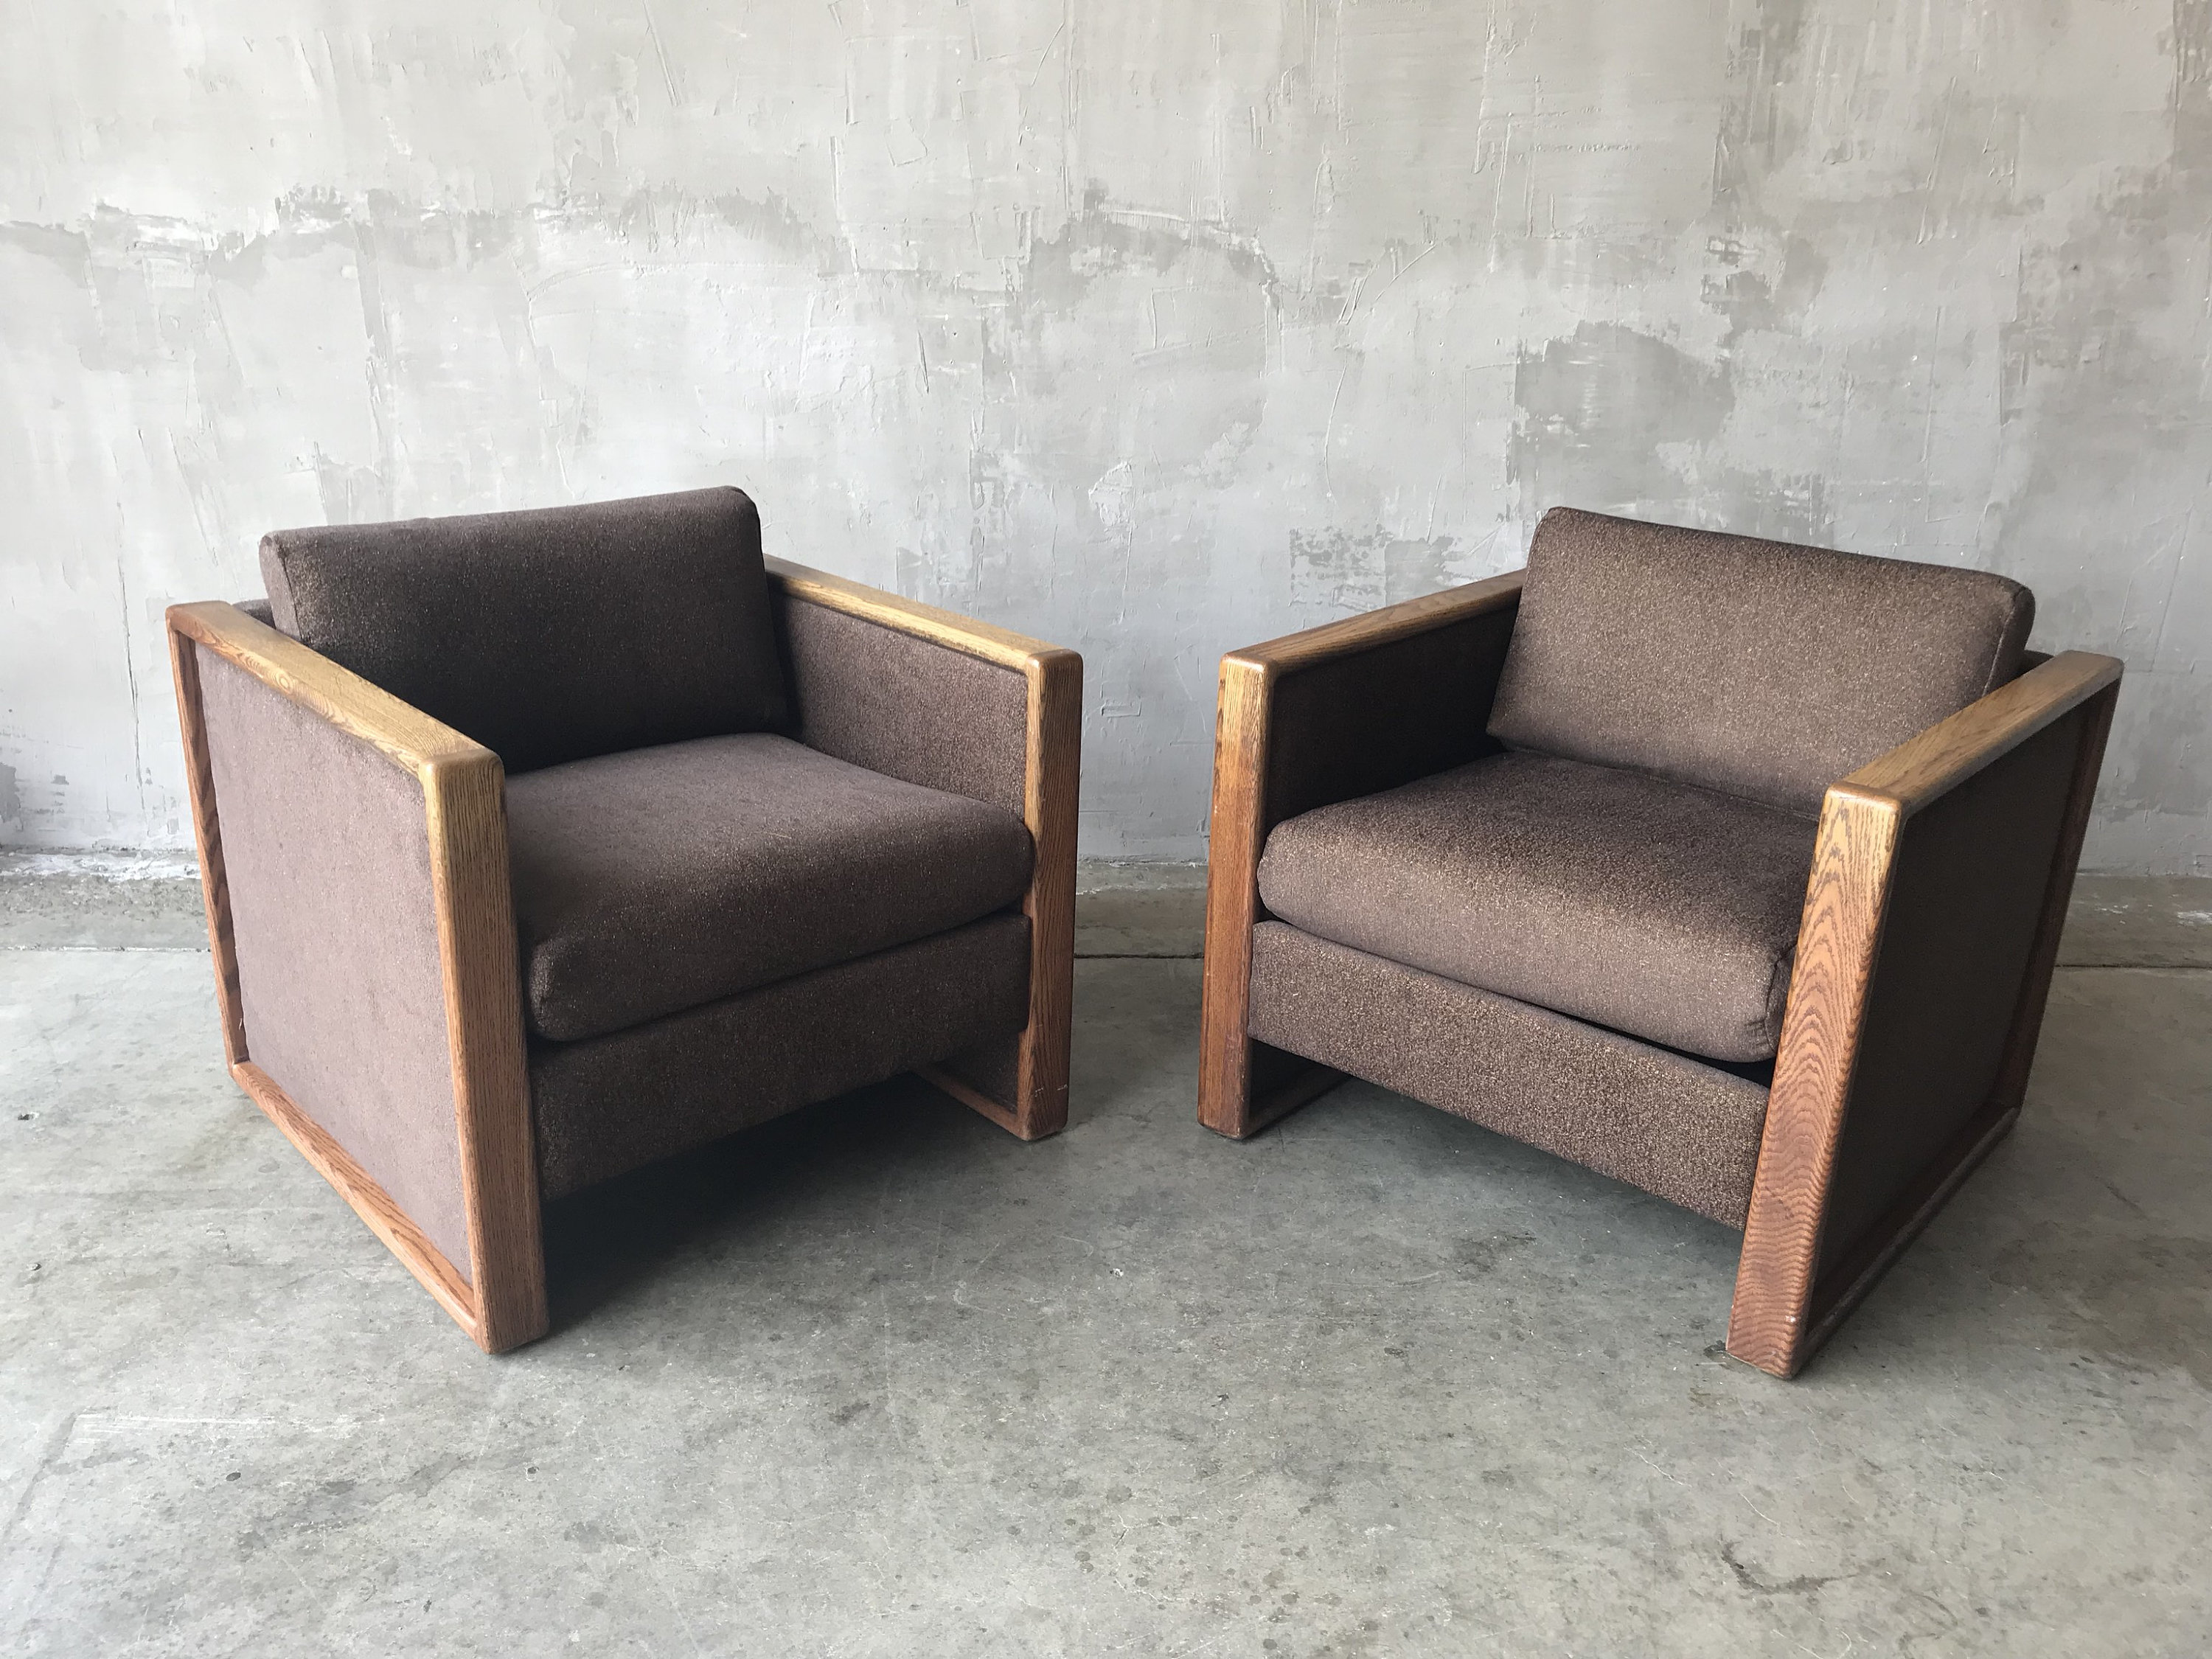 Cube Chairs Pair Of Cube Chairs With Wood Trim